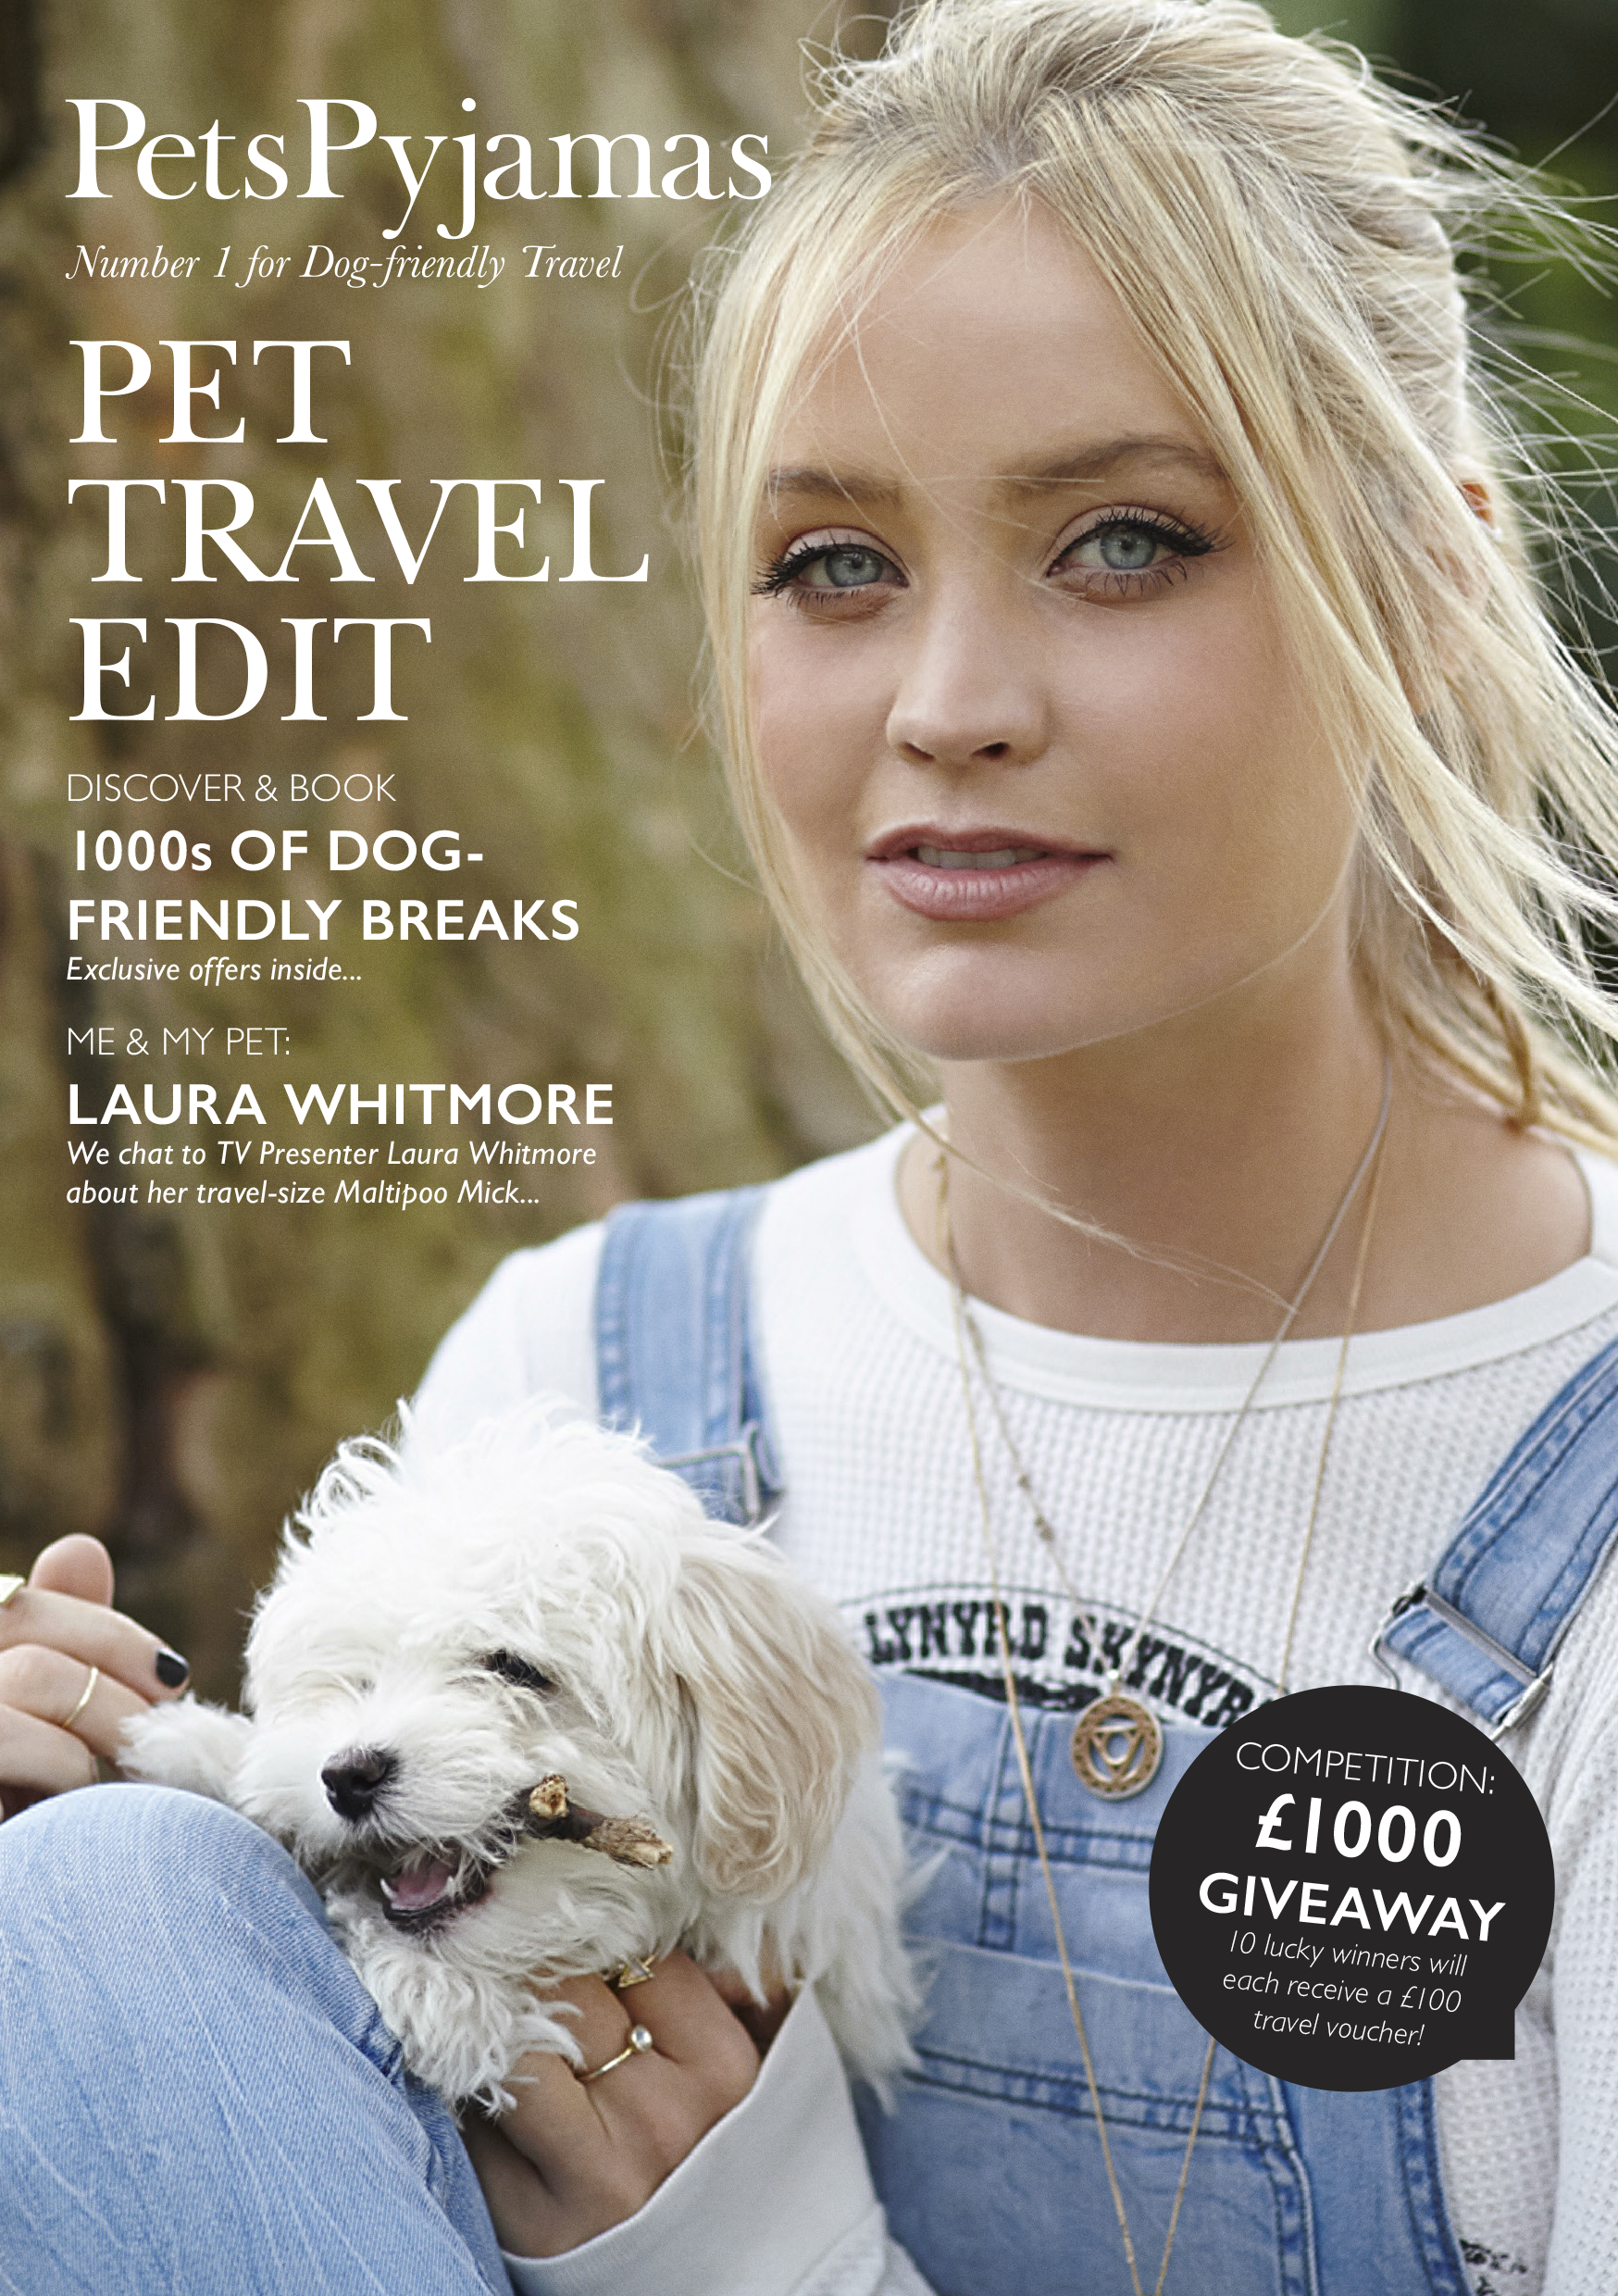 Celebrity Laura Whitmore appears on the cover.